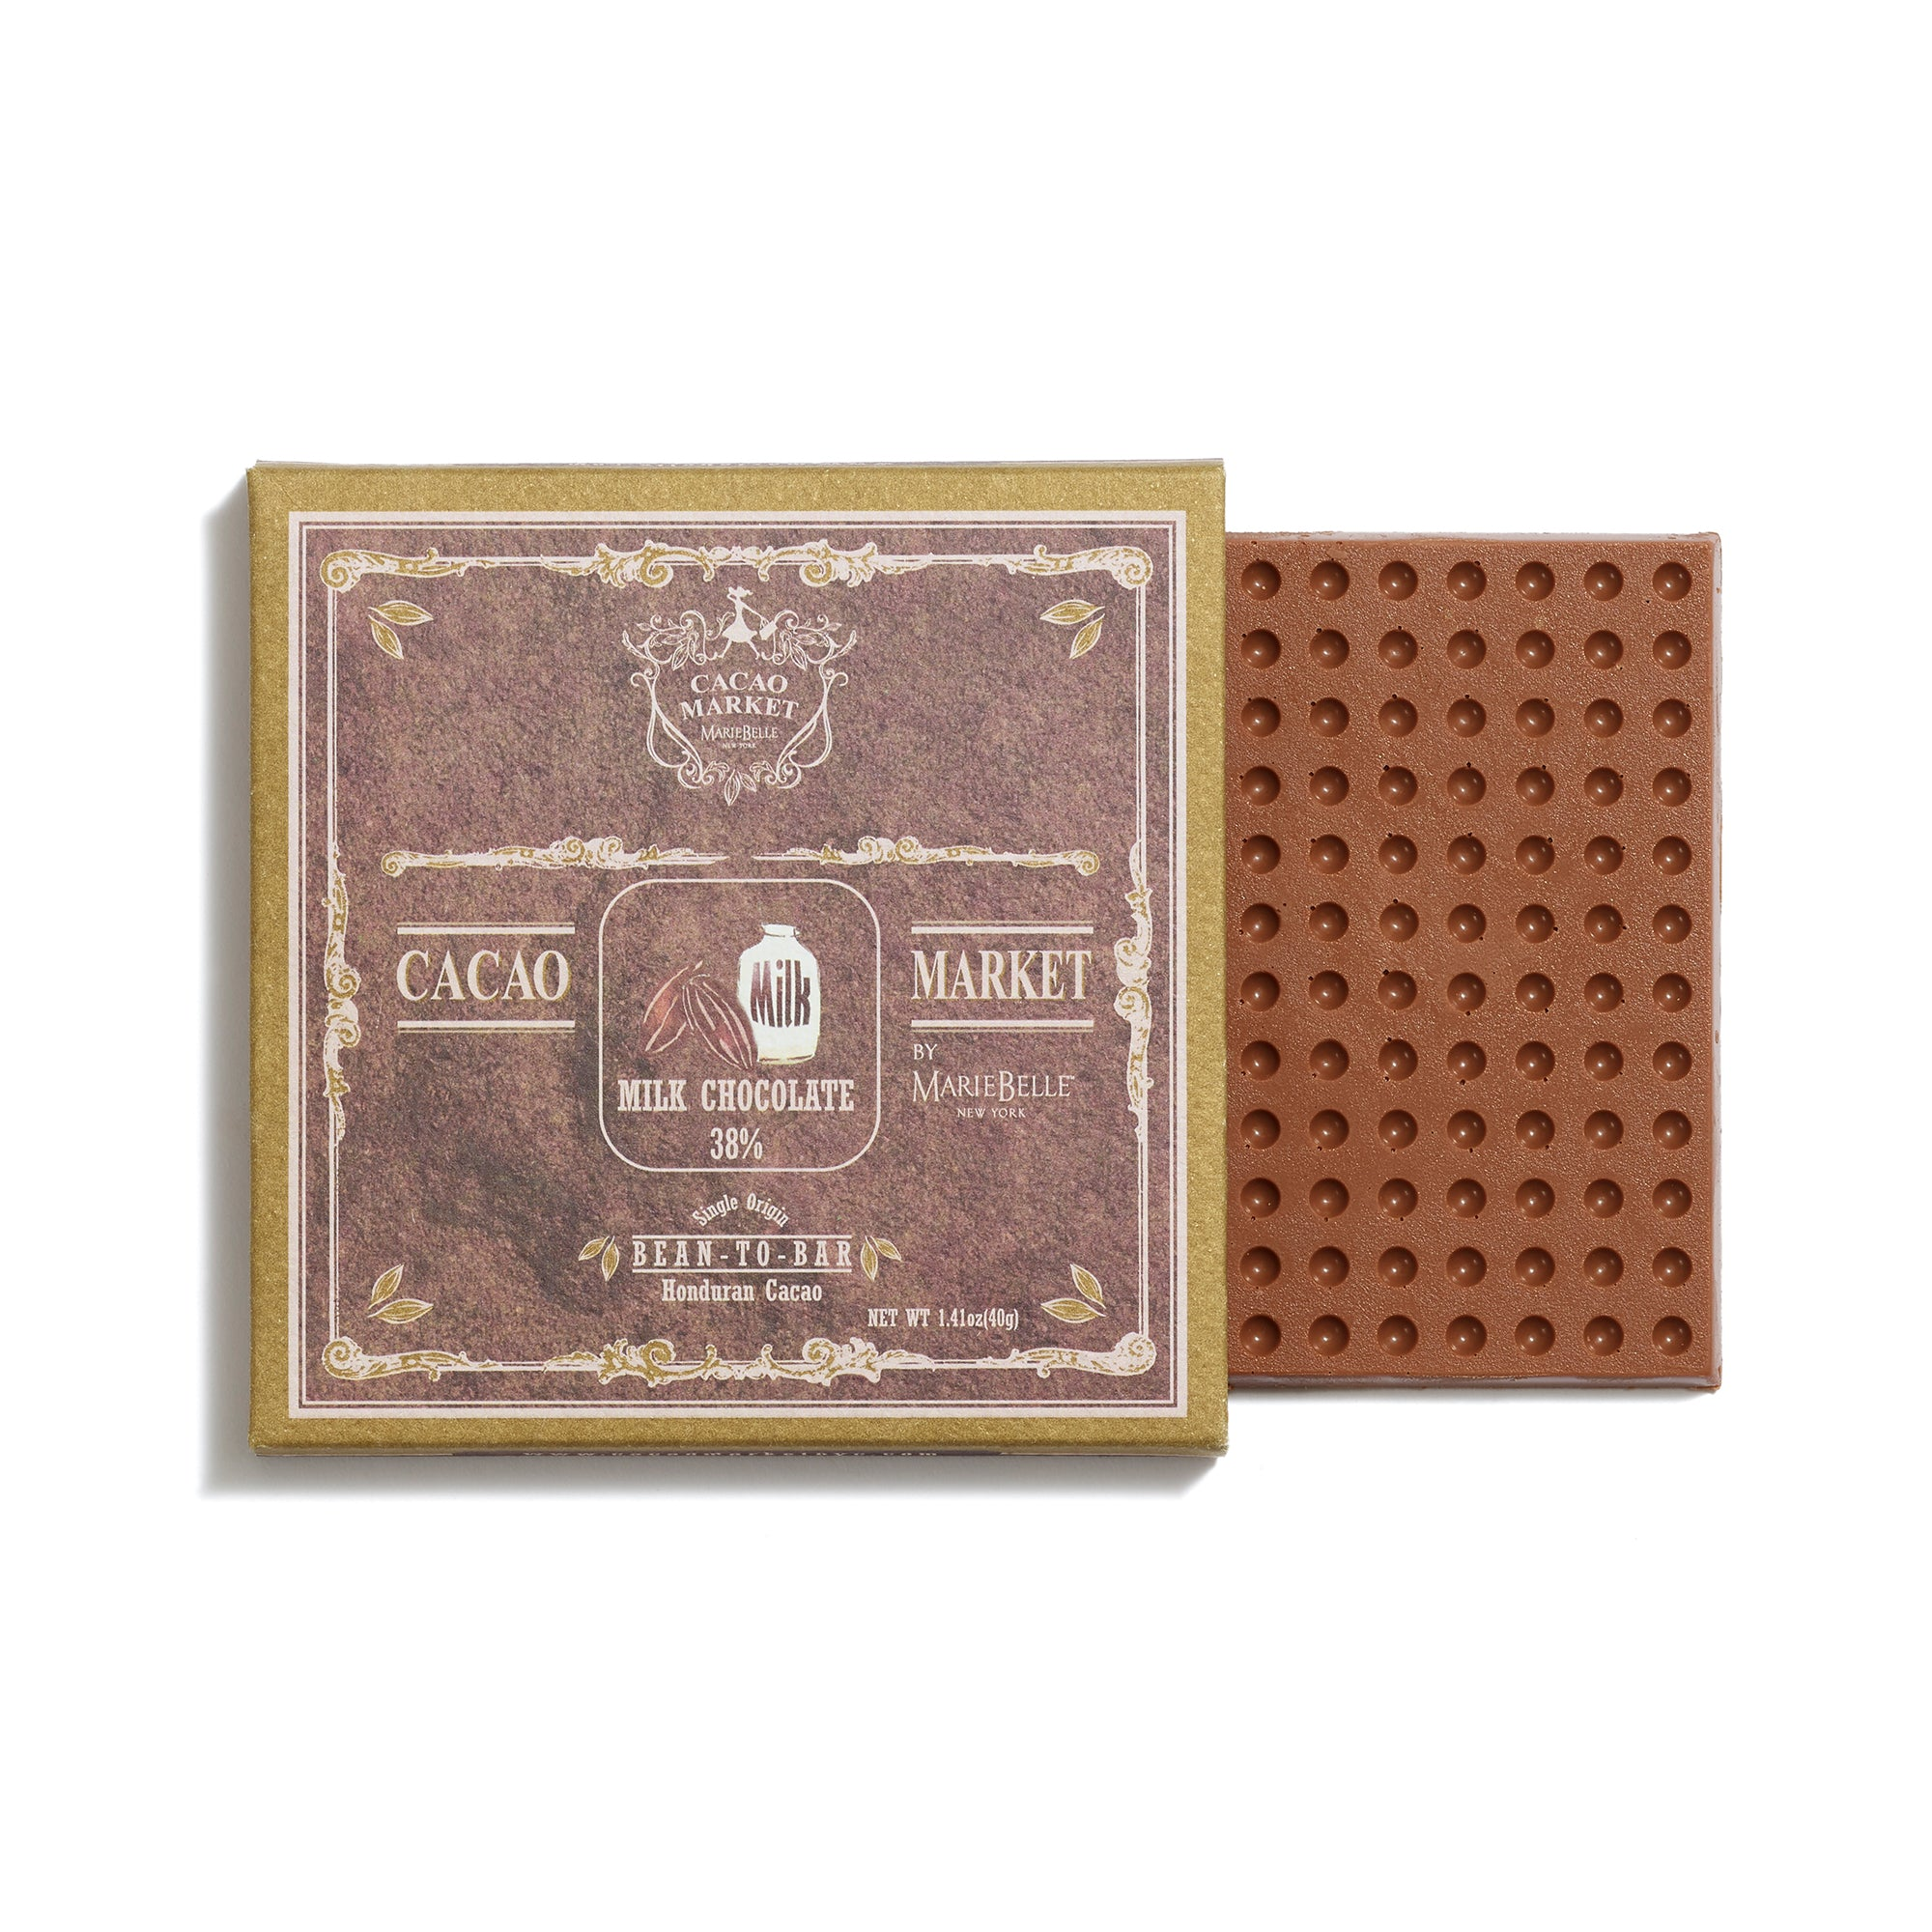 40g 38% Milk Chocolate Bar